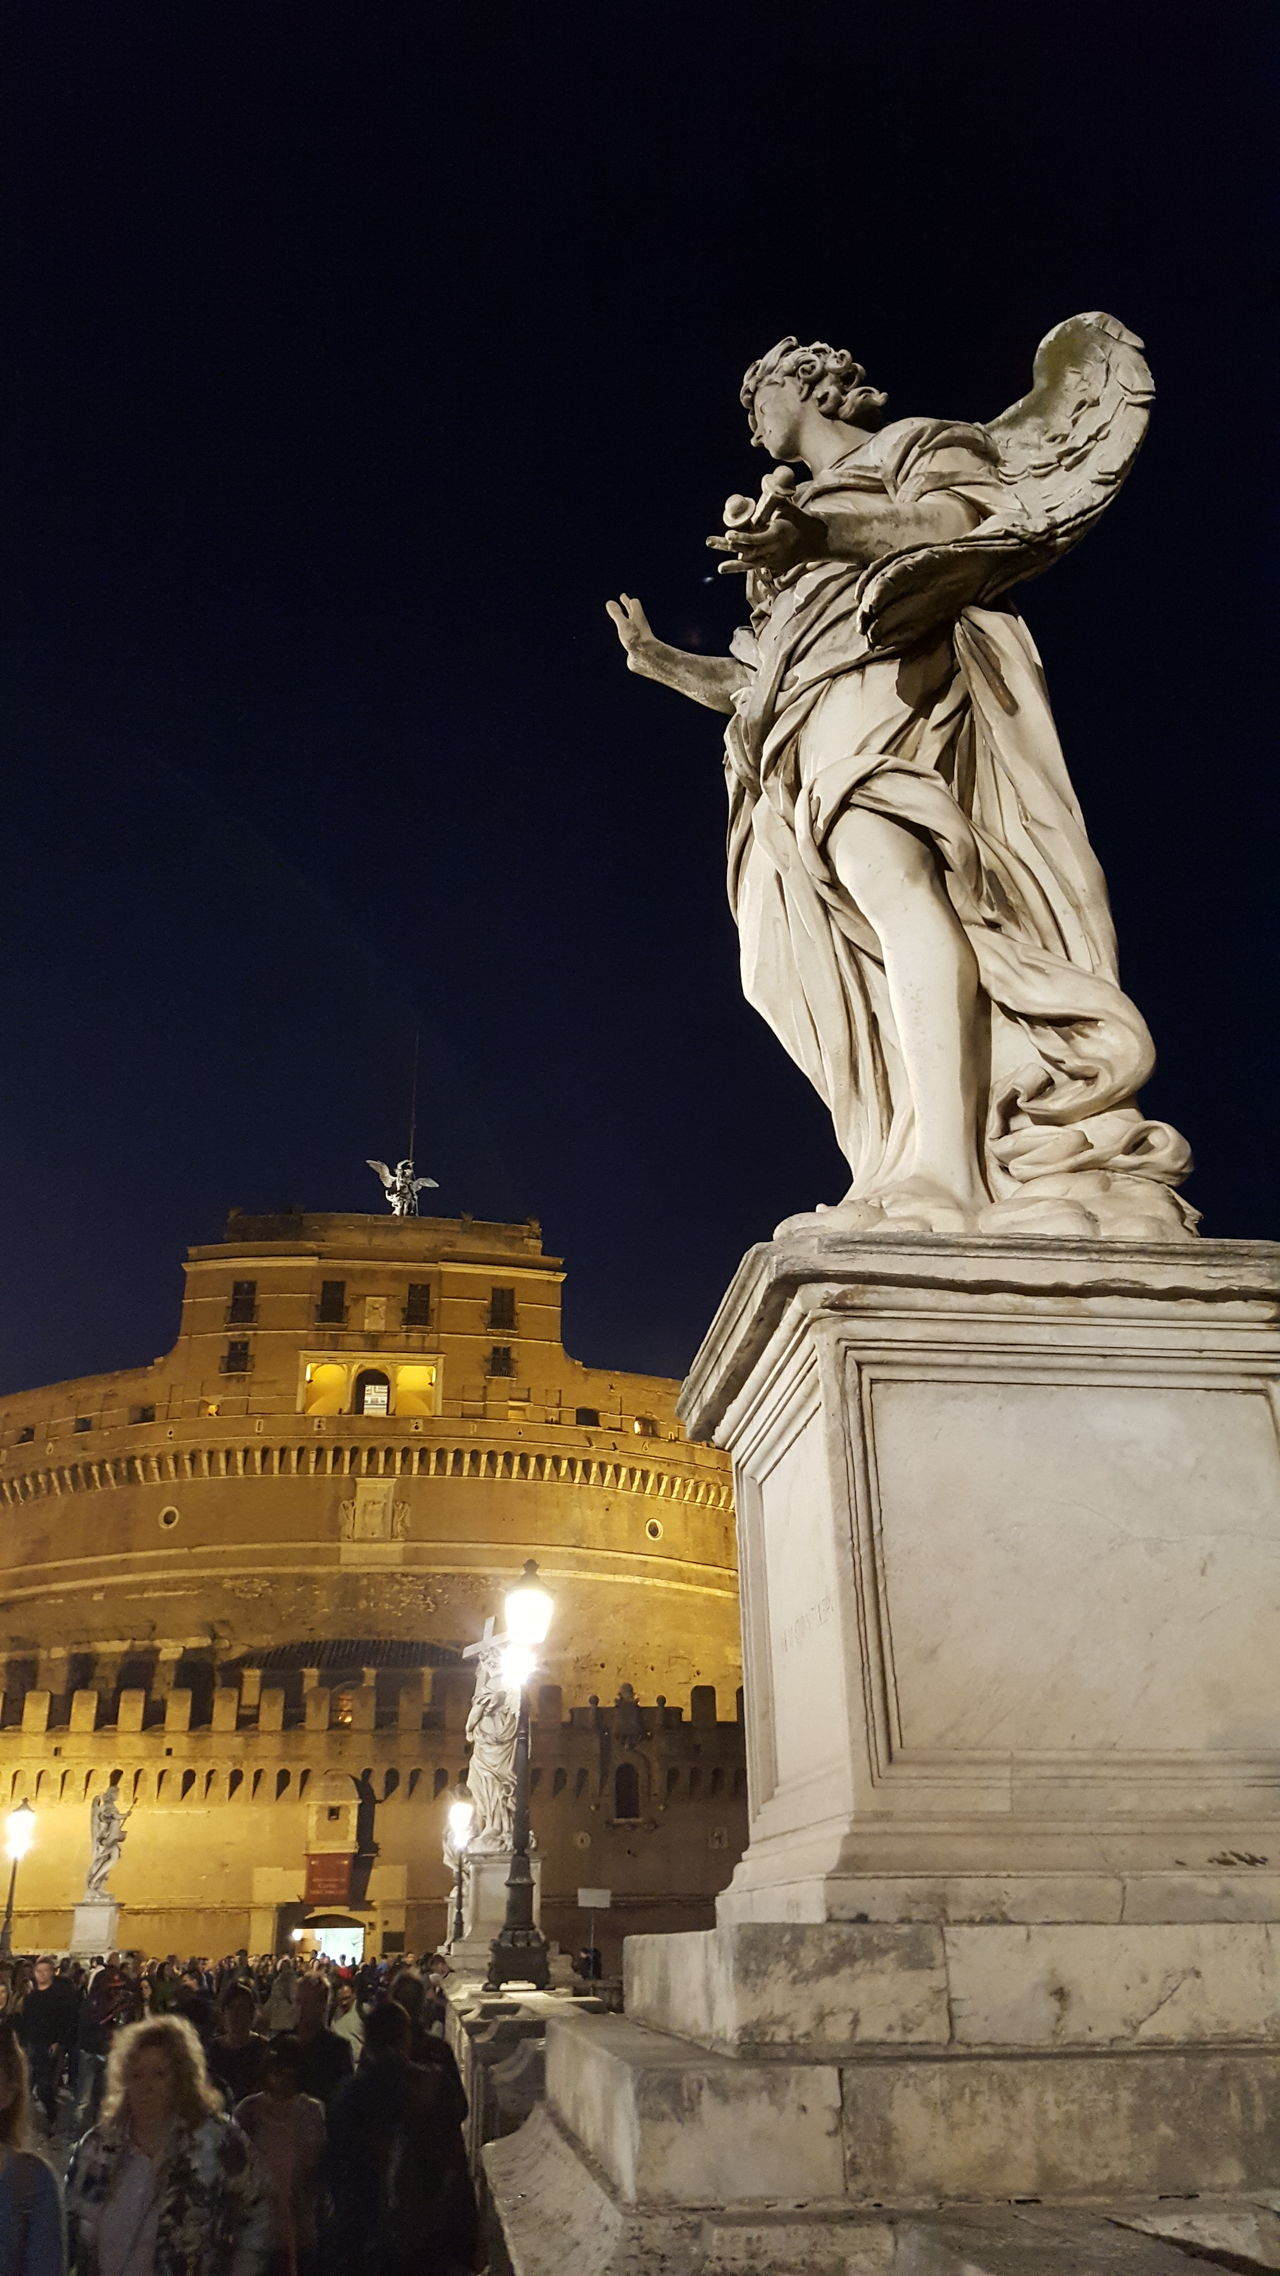 Architecture Illuminated Cityscape Rome By Night Rome, Italy Outdoors Travel Destinations Vaticano City Sky Night Castel Sant' Angelo CASTEL SANT'ANGELO ROME Statue Religion City History Architecture Sculpture